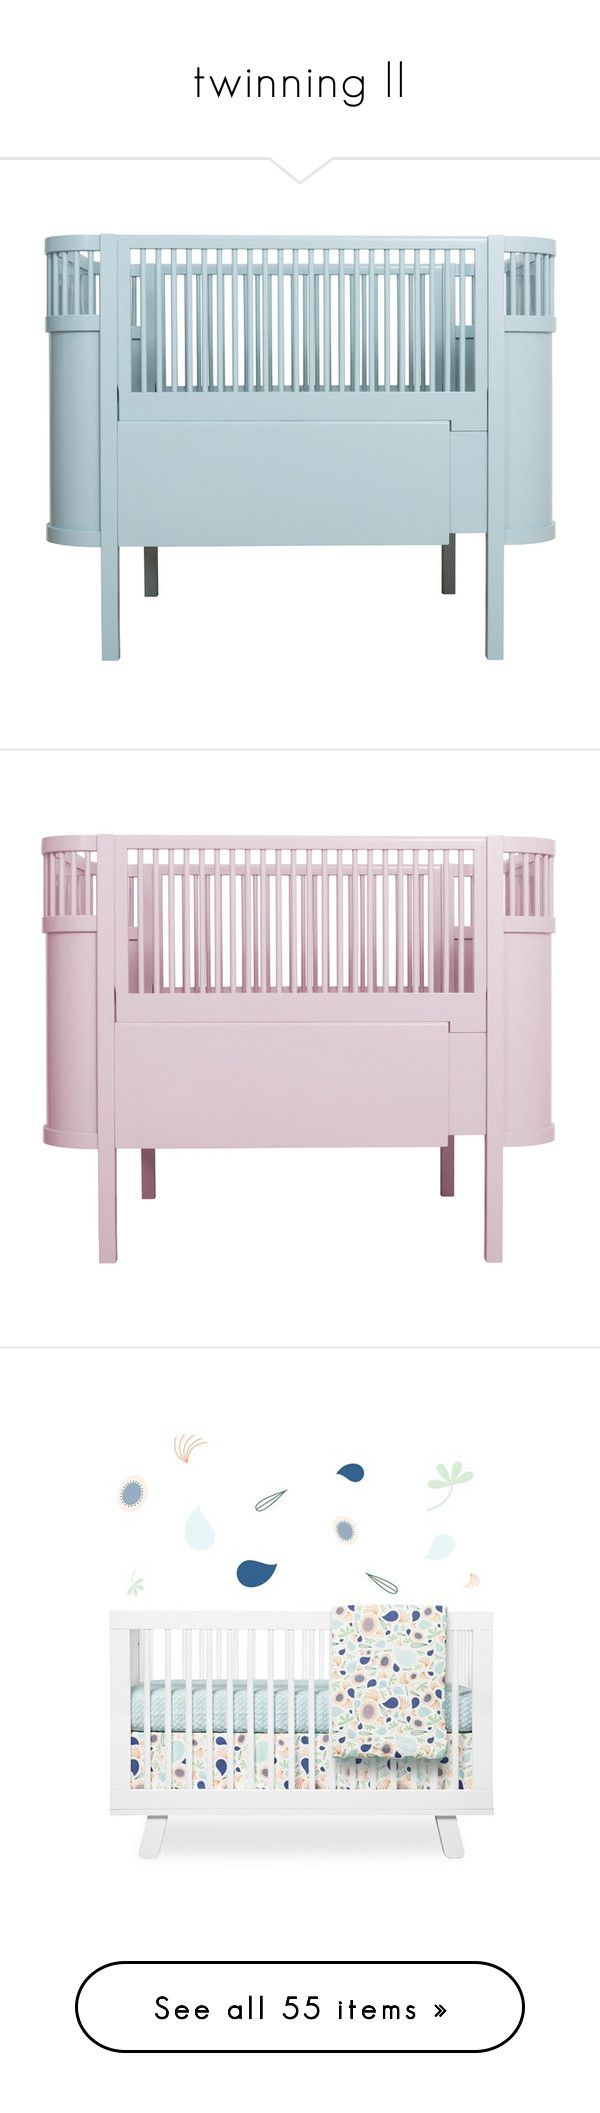 """""""twinning II"""" by crazyanddaisy on Polyvore featuring home, children's room, children's furniture, nursery furniture, blue, pink, children's bedding, baby bedding, rocking chair and white"""